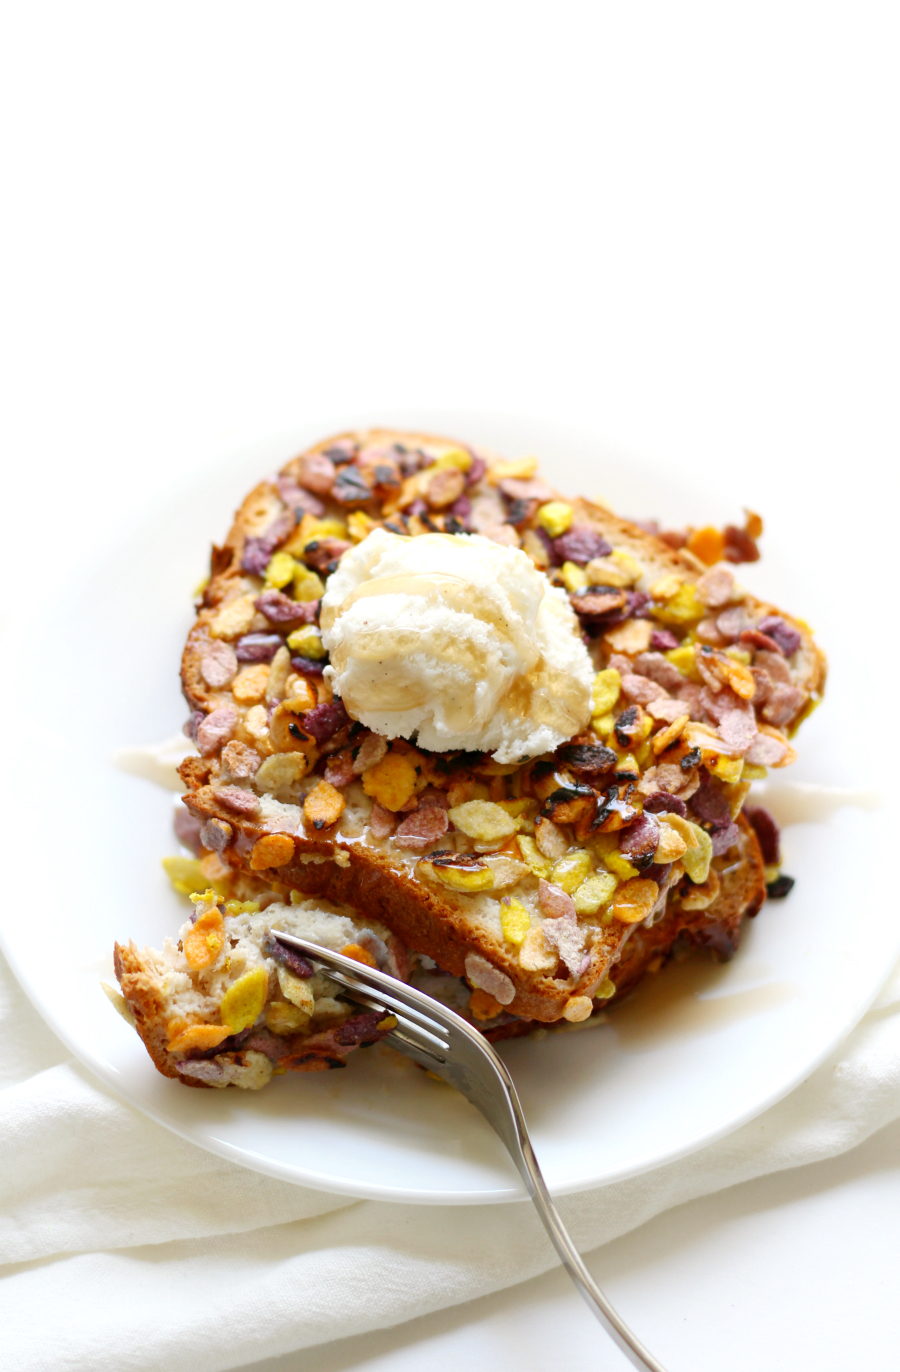 Rainbow Rockin' French Toast (Gluten-Free, Allergy-Free, Vegan) | Strength and Sunshine @RebeccaGF666 A special breakfast recipe that will bring out all the smiles! Rainbow Rockin' French Toast that's gluten-free, allergy-free and vegan so you can serve the kids something fun and prove that eating with food allergies is not boring!